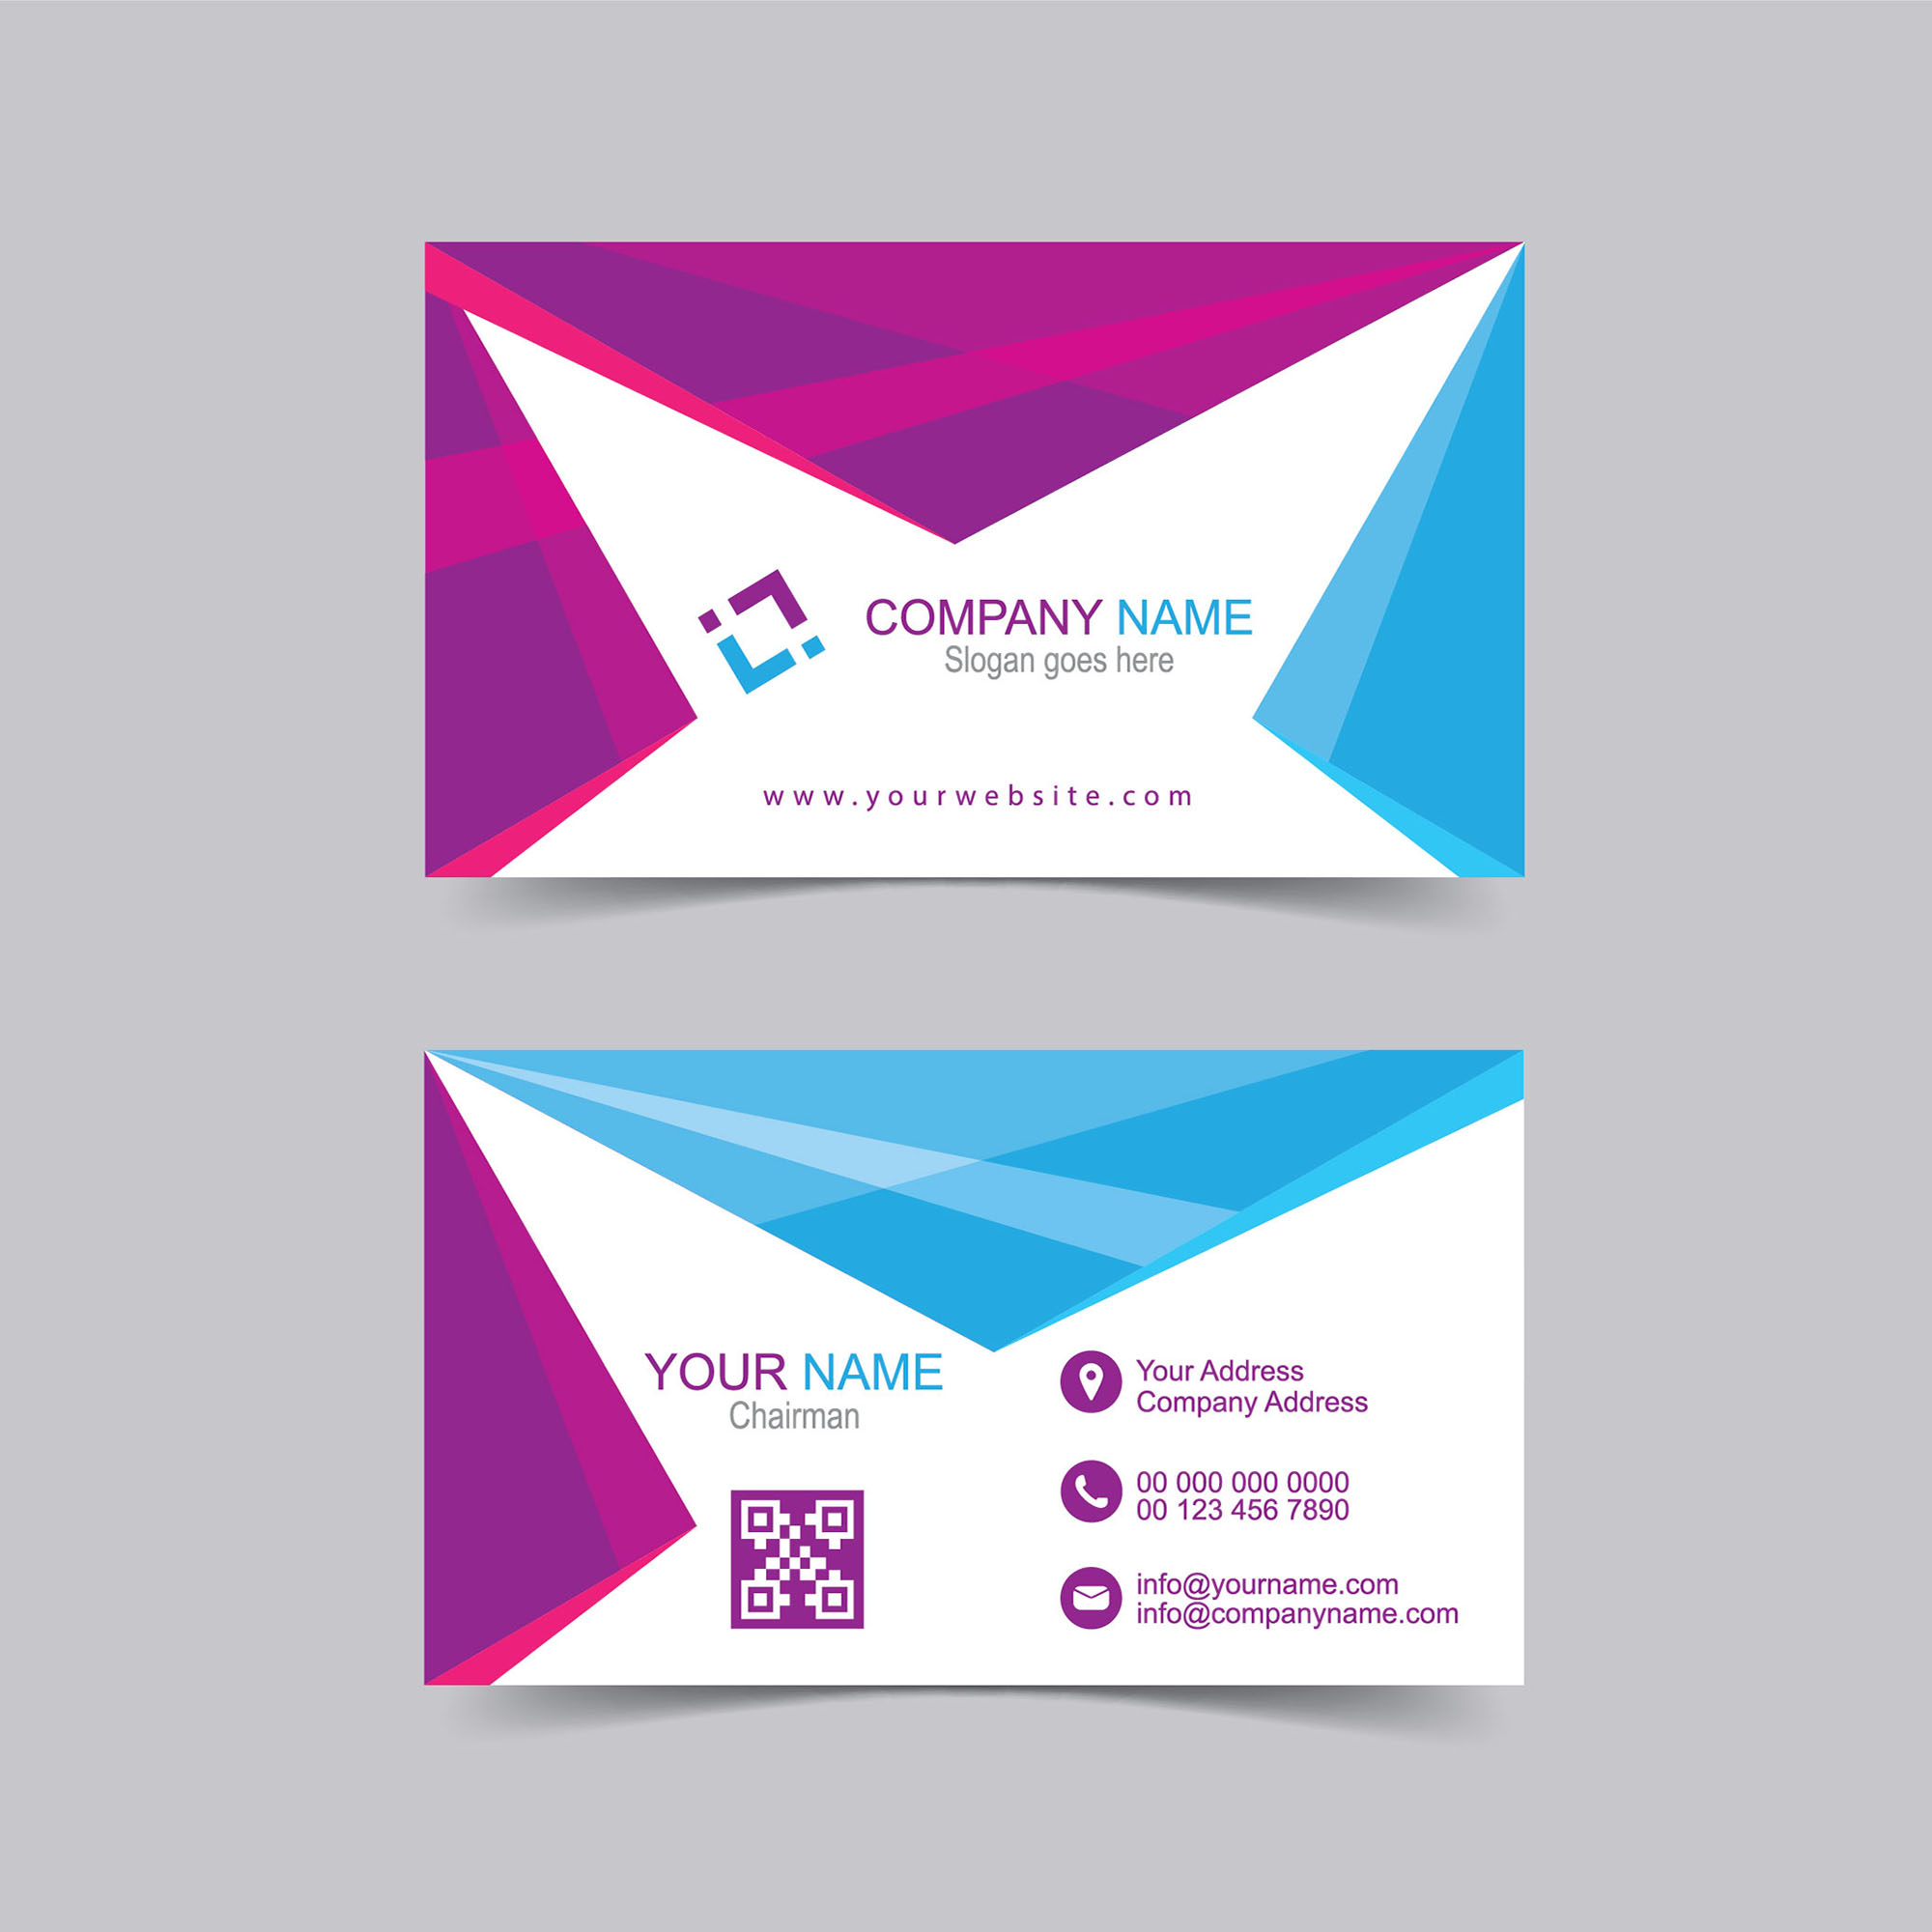 Visiting card vector template free download wisxi business card business cards business card design business card template design templates flashek Gallery